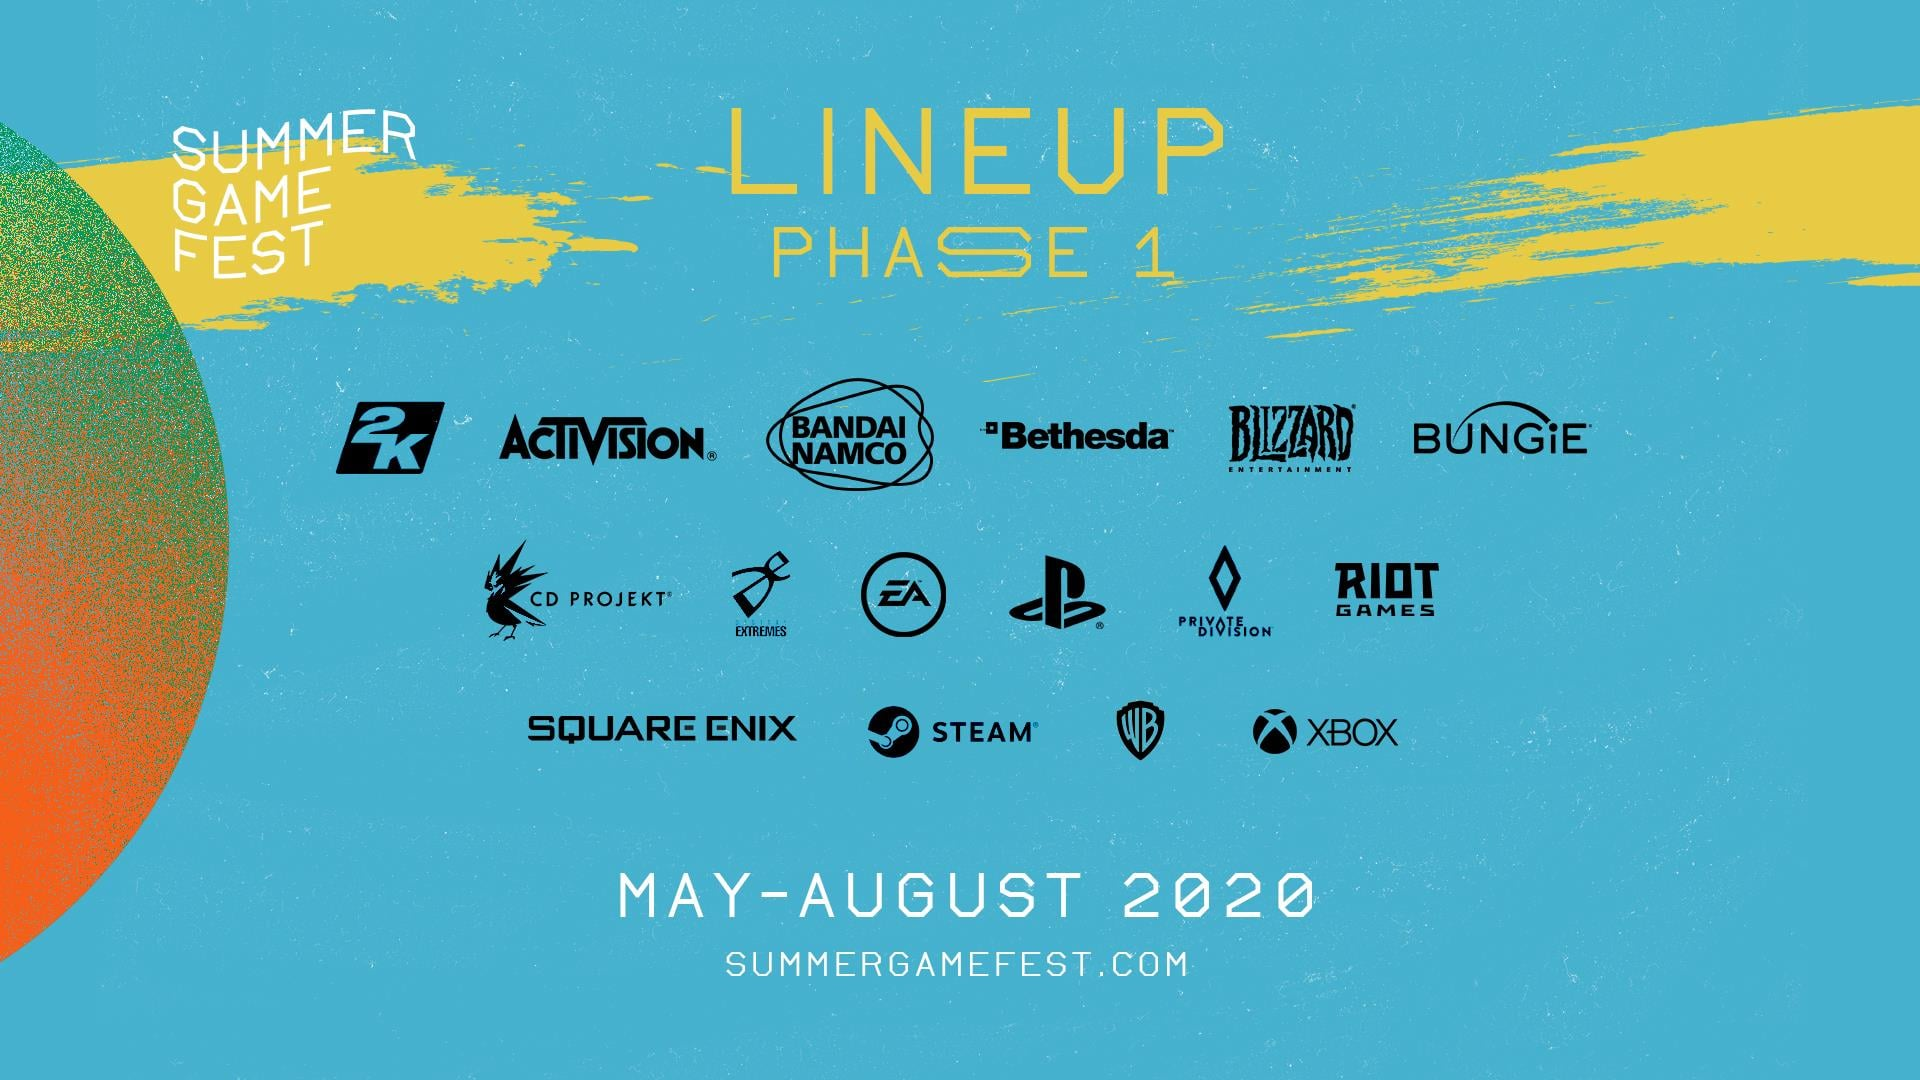 Sony and Microsoft to show games at Geoff Keighley's Summer Game Fest